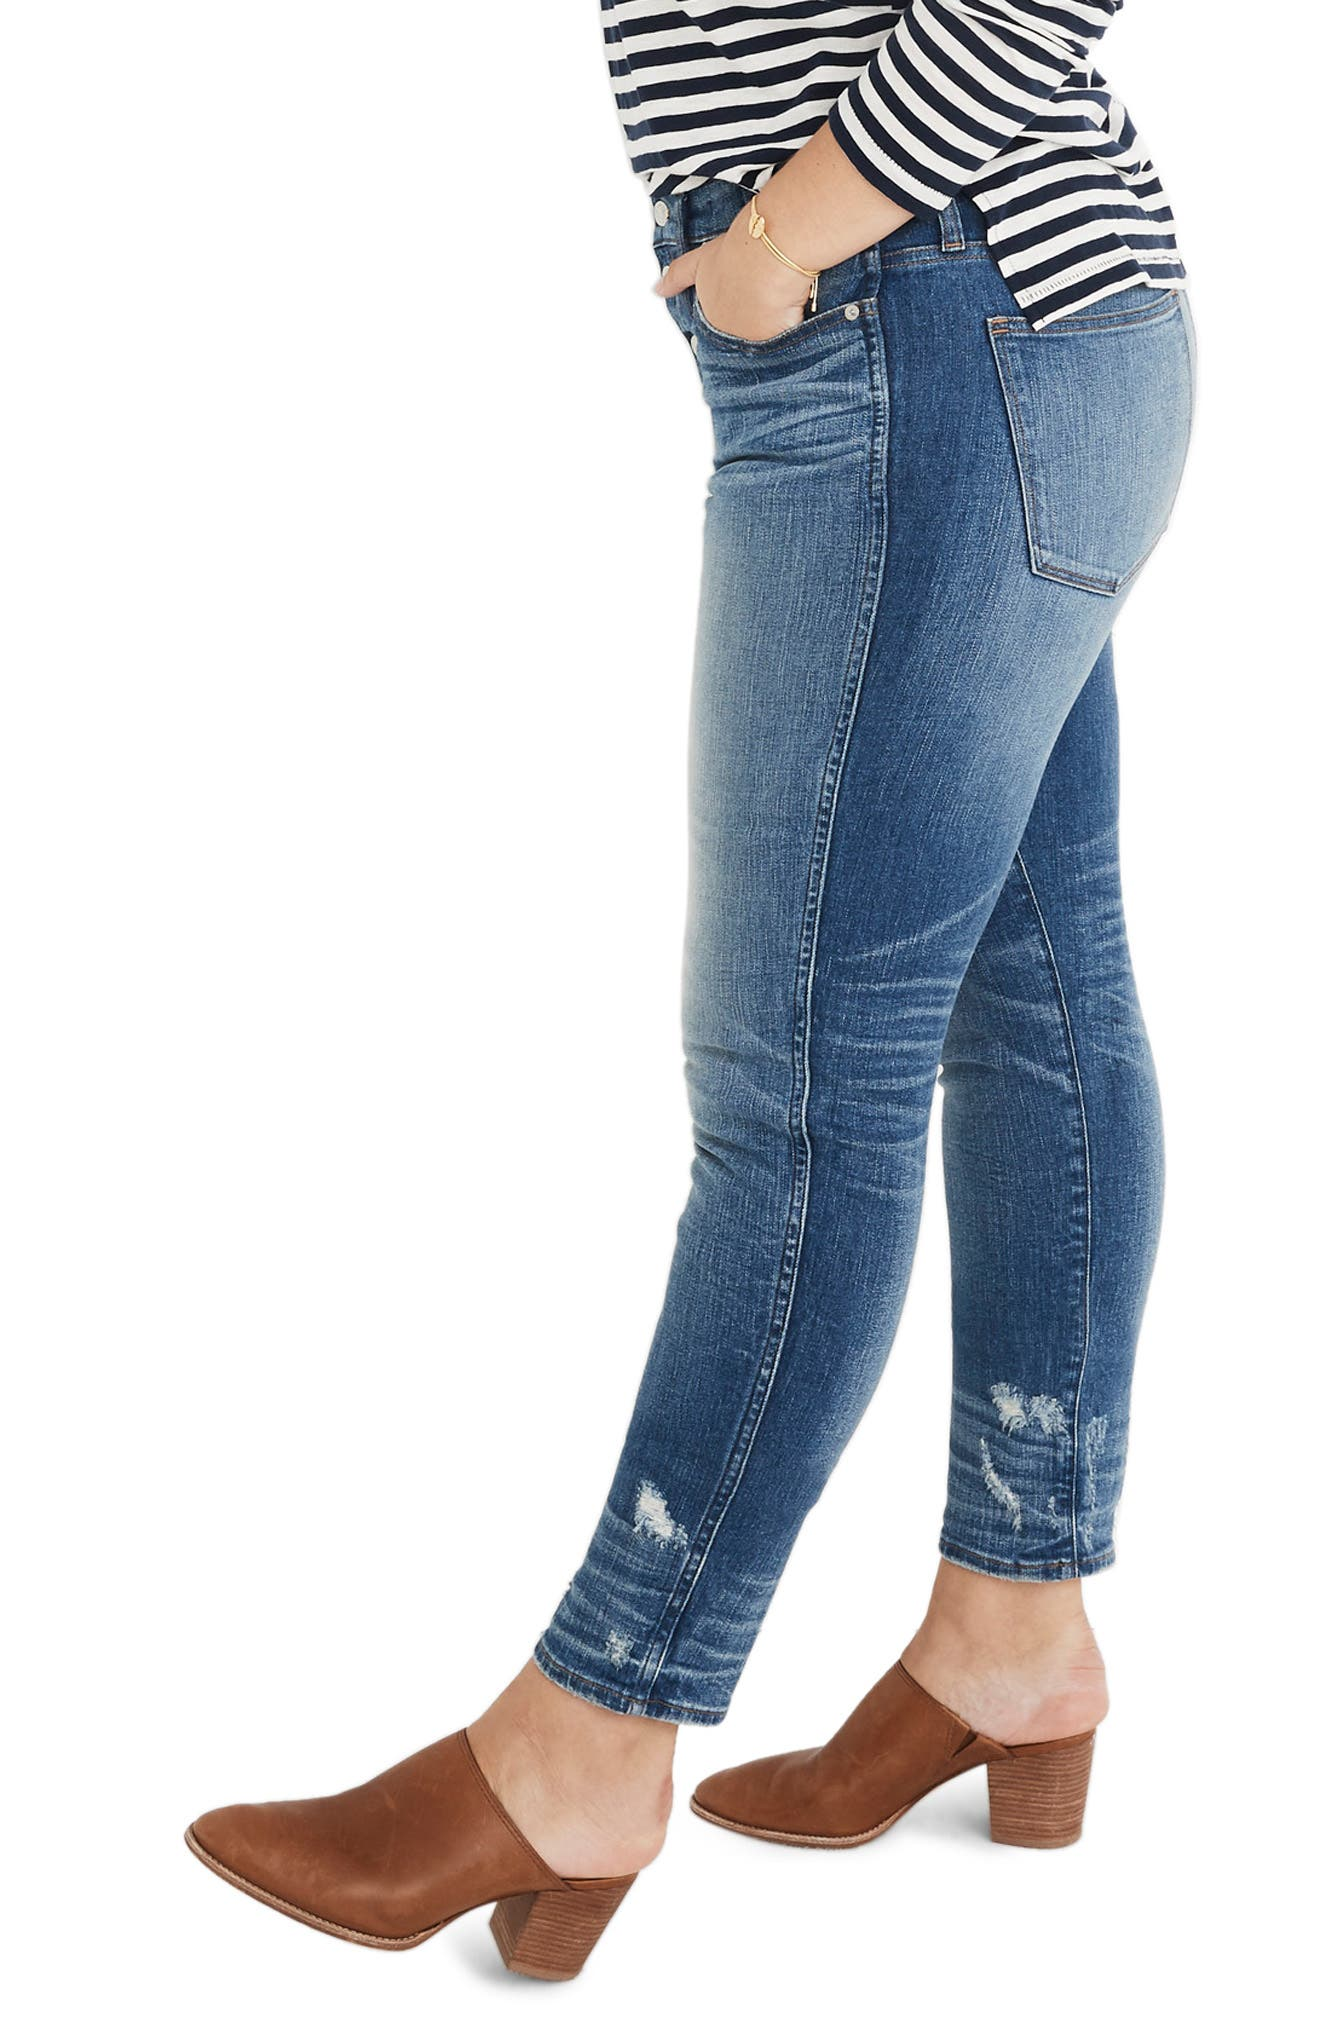 MADEWELL,                             Distressed Button Front High Waist Slim Straight Jeans,                             Alternate thumbnail 9, color,                             CAROLINE